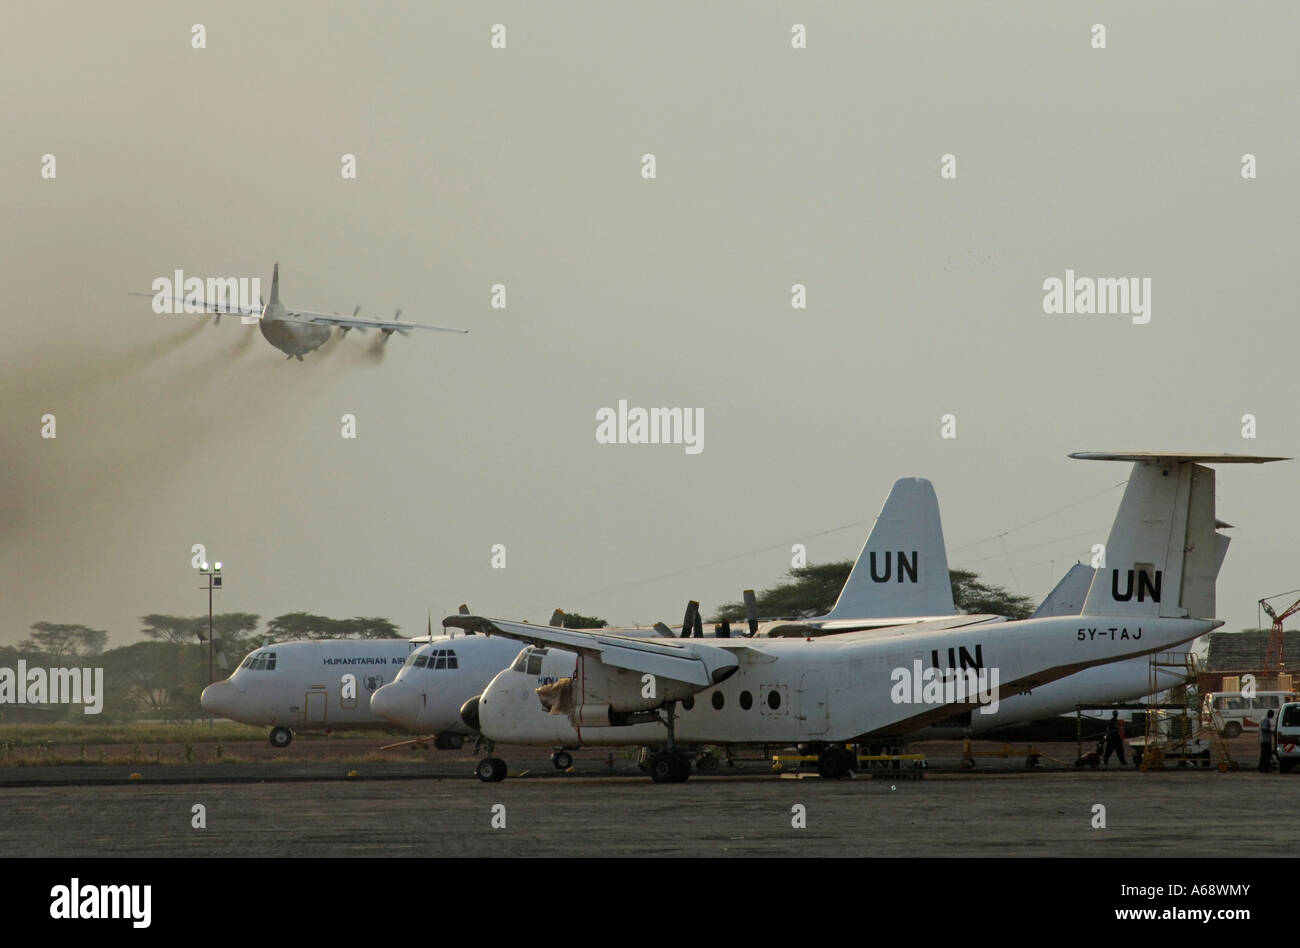 UN air planes at Lokichoggio airport (Kenya) flying food aid to southern Sudan - Stock Image